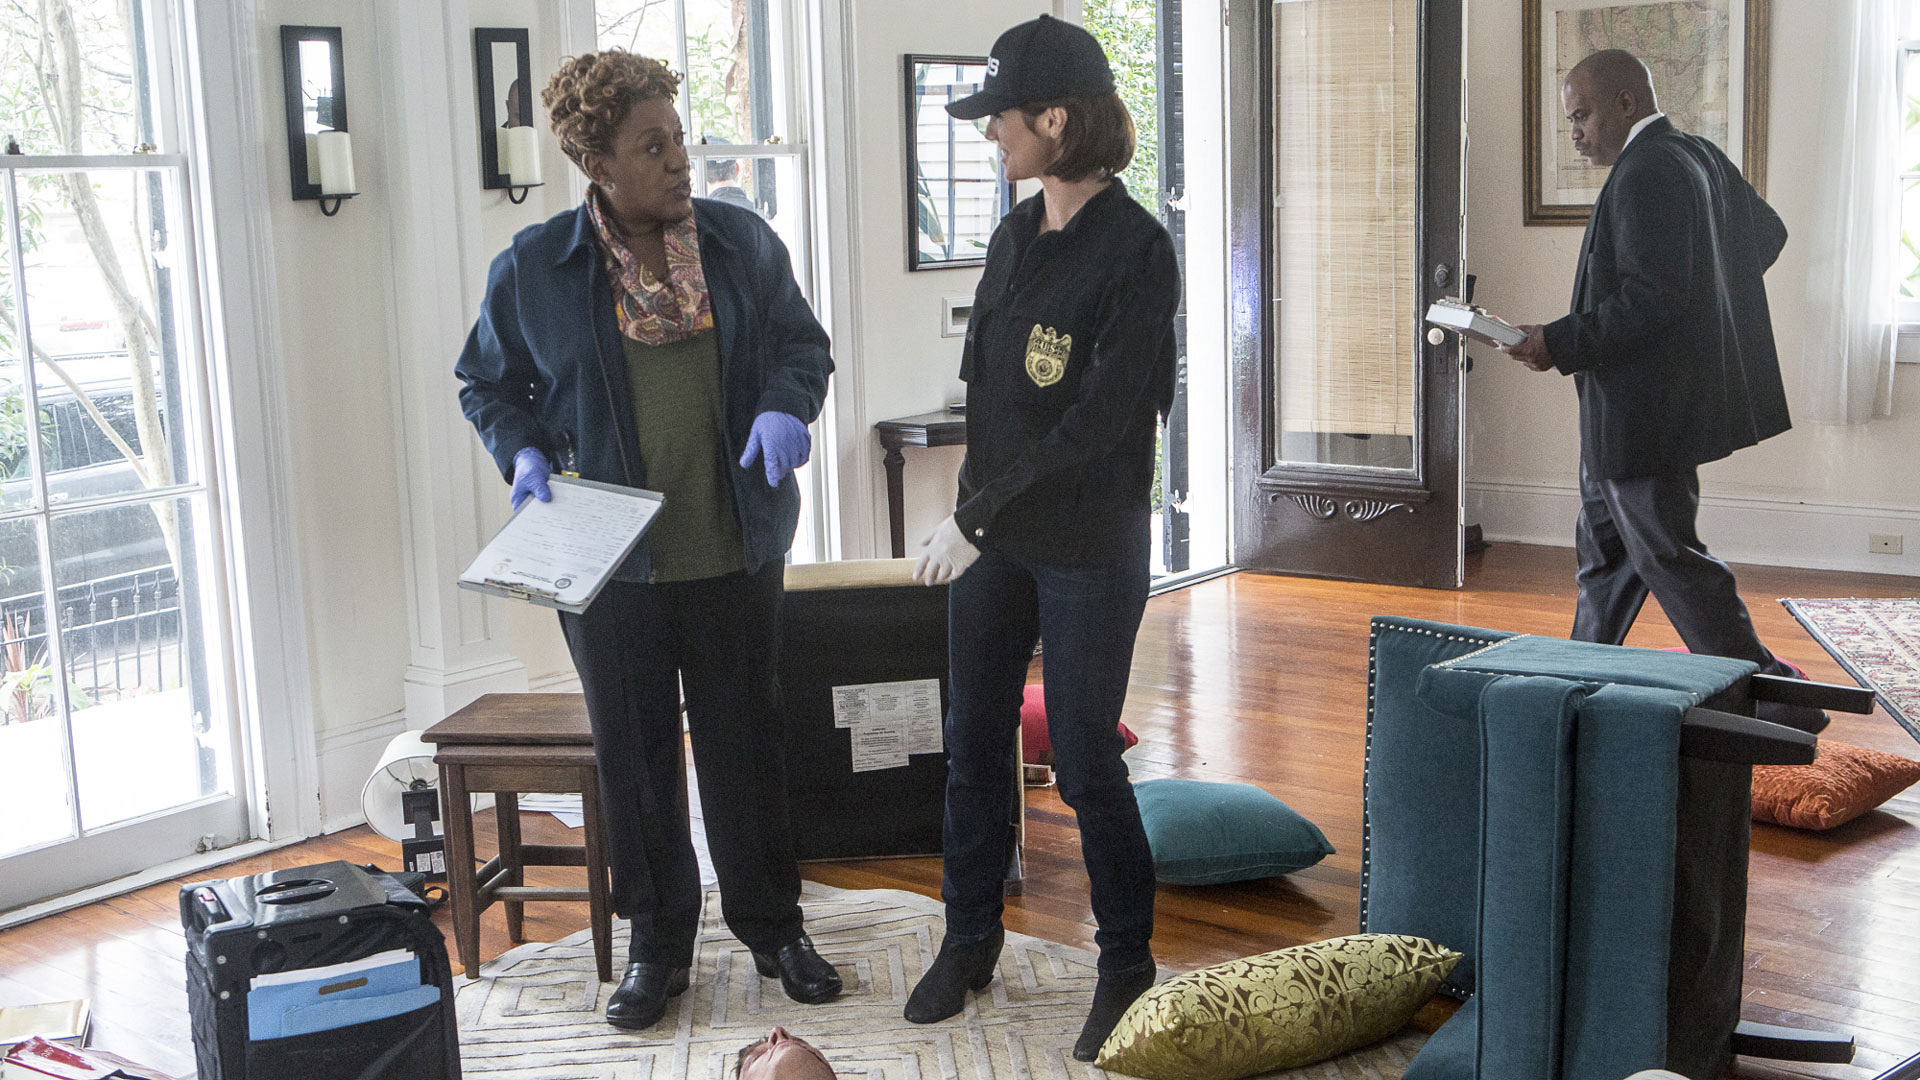 CCH Pounder as Dr. Loretta Wade and Zoe McLellan as Meredith Brody